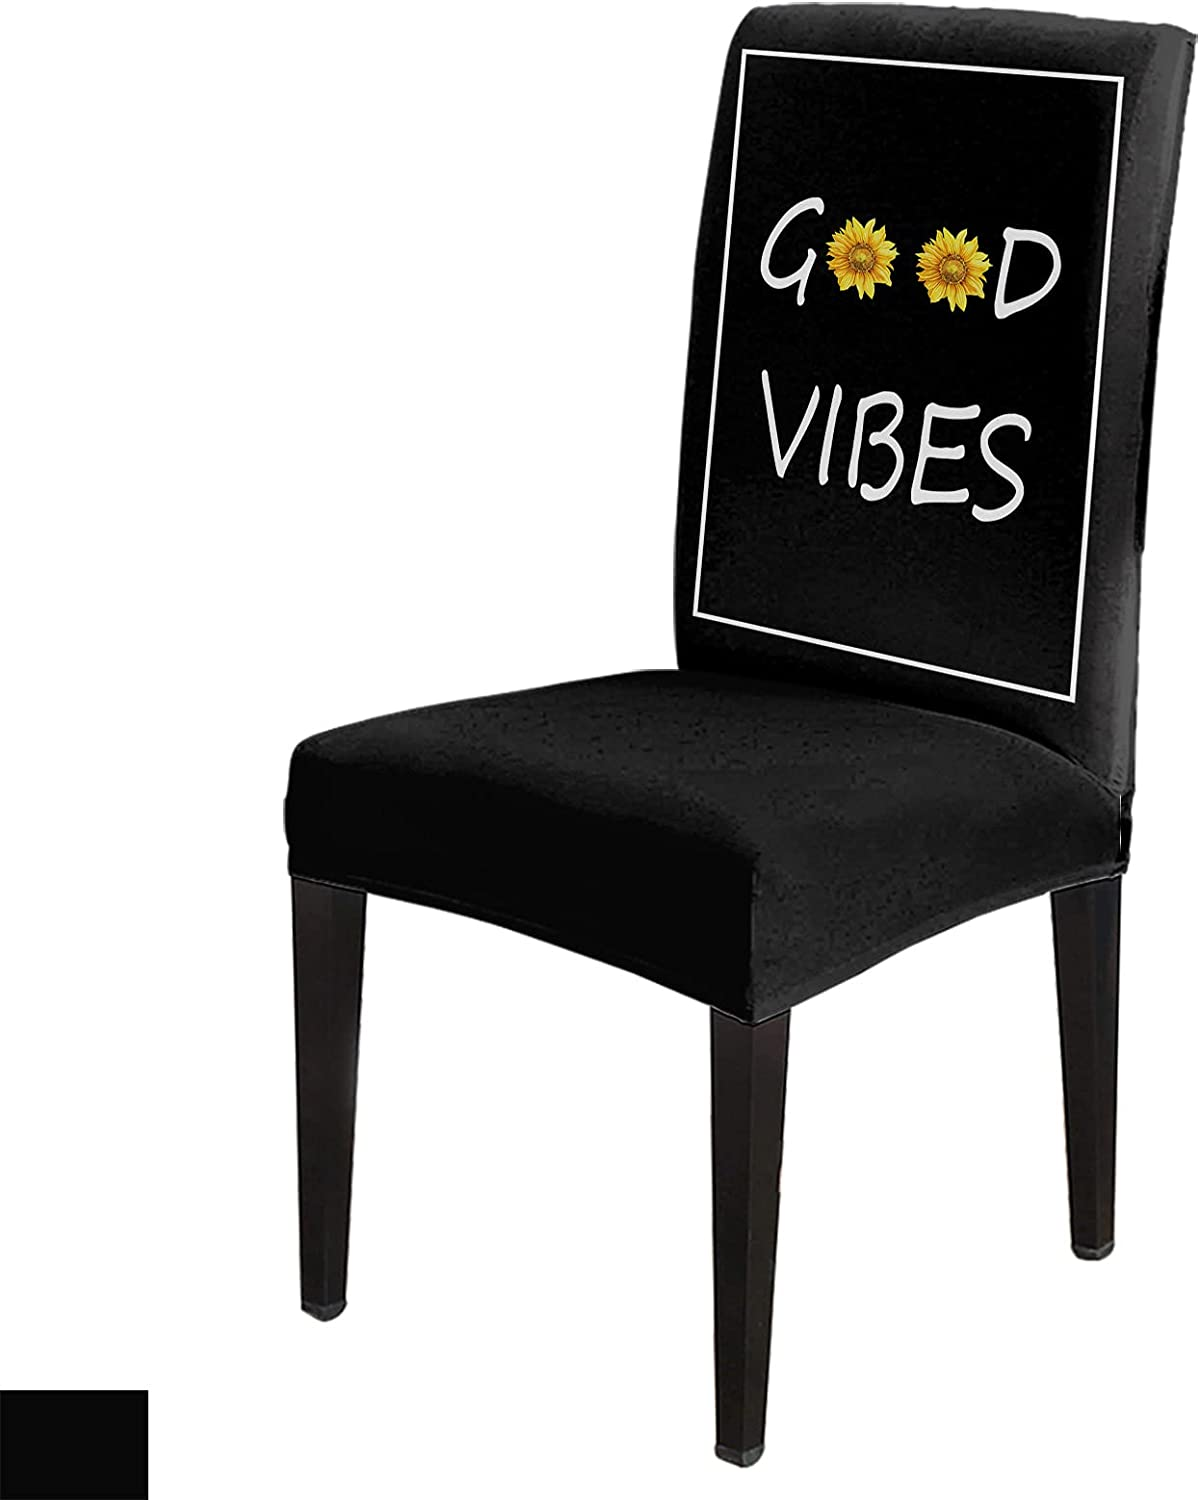 8 Per Set At the price Good Vibes with White Chair Sunflowers Cover Line Thin discount